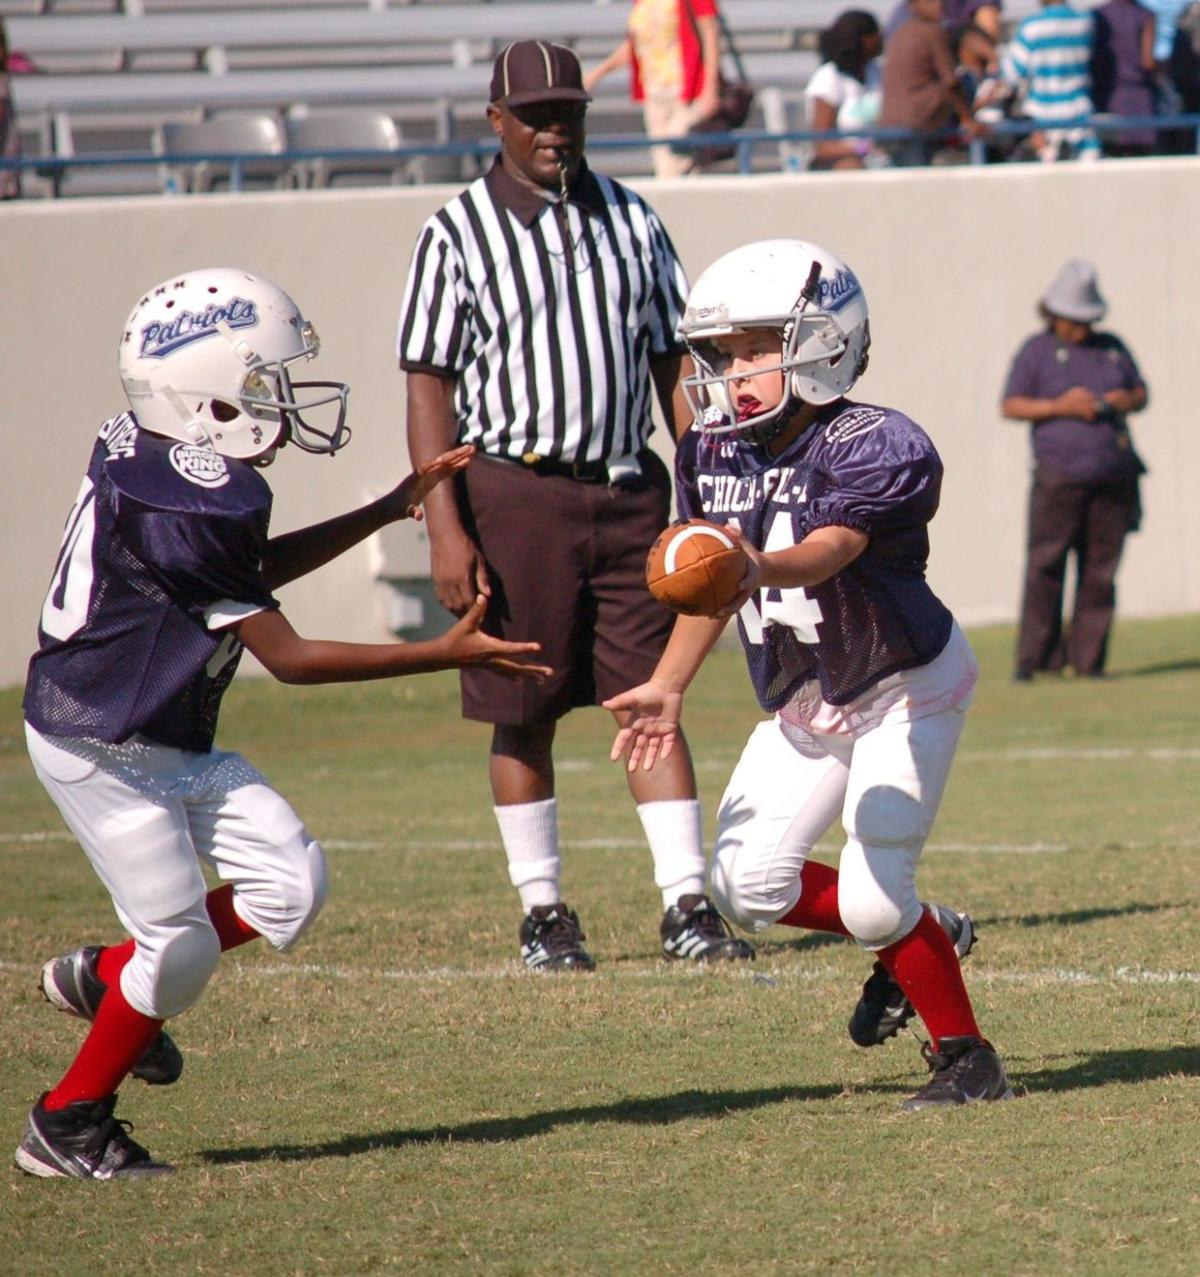 American Academy of Pediatrics weighs in on youth football safety